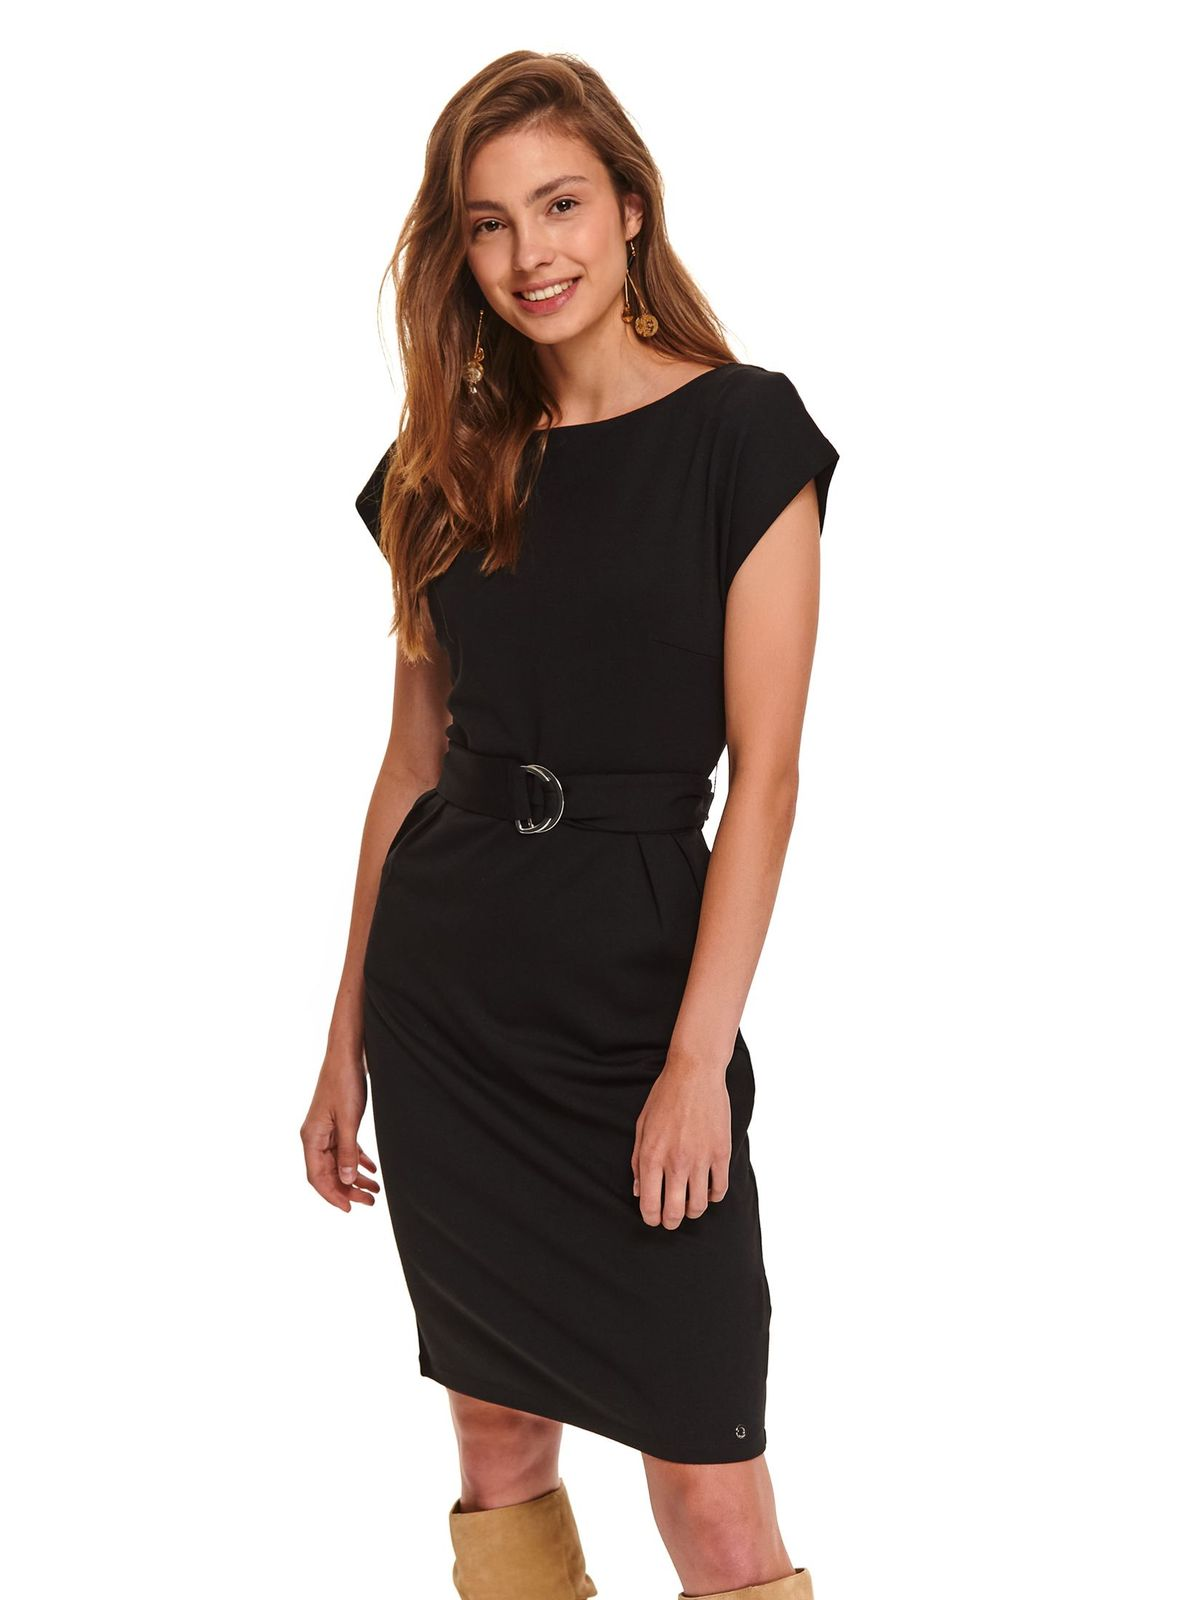 Black dress midi daily pencil thin fabric accessorized with tied waistband